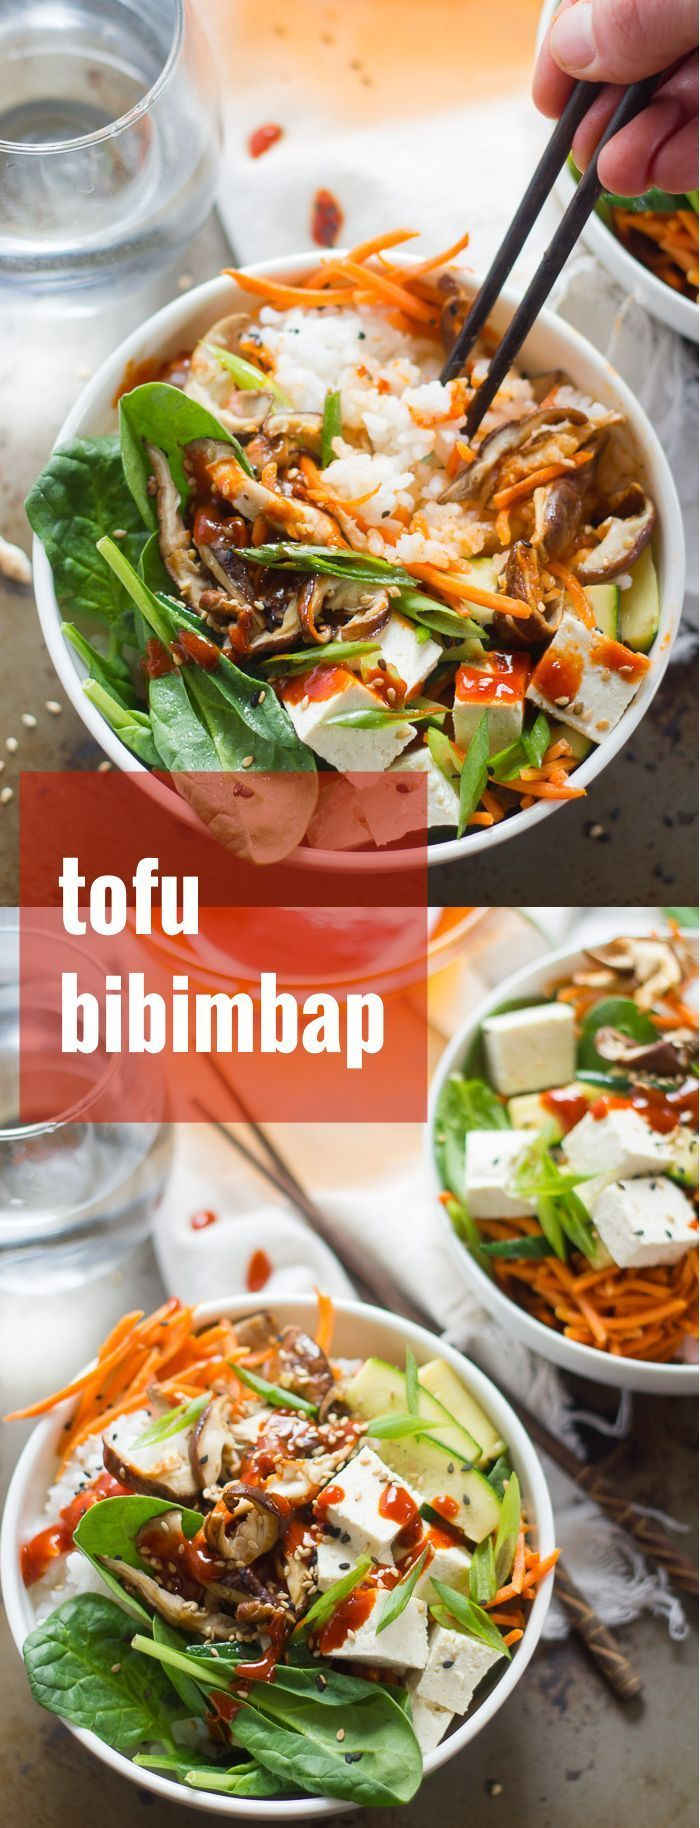 A vegan version of a Korean classic, these tofu bibimbap rice bowls are filled with veggies and dressed in spicy red pepper sauce.